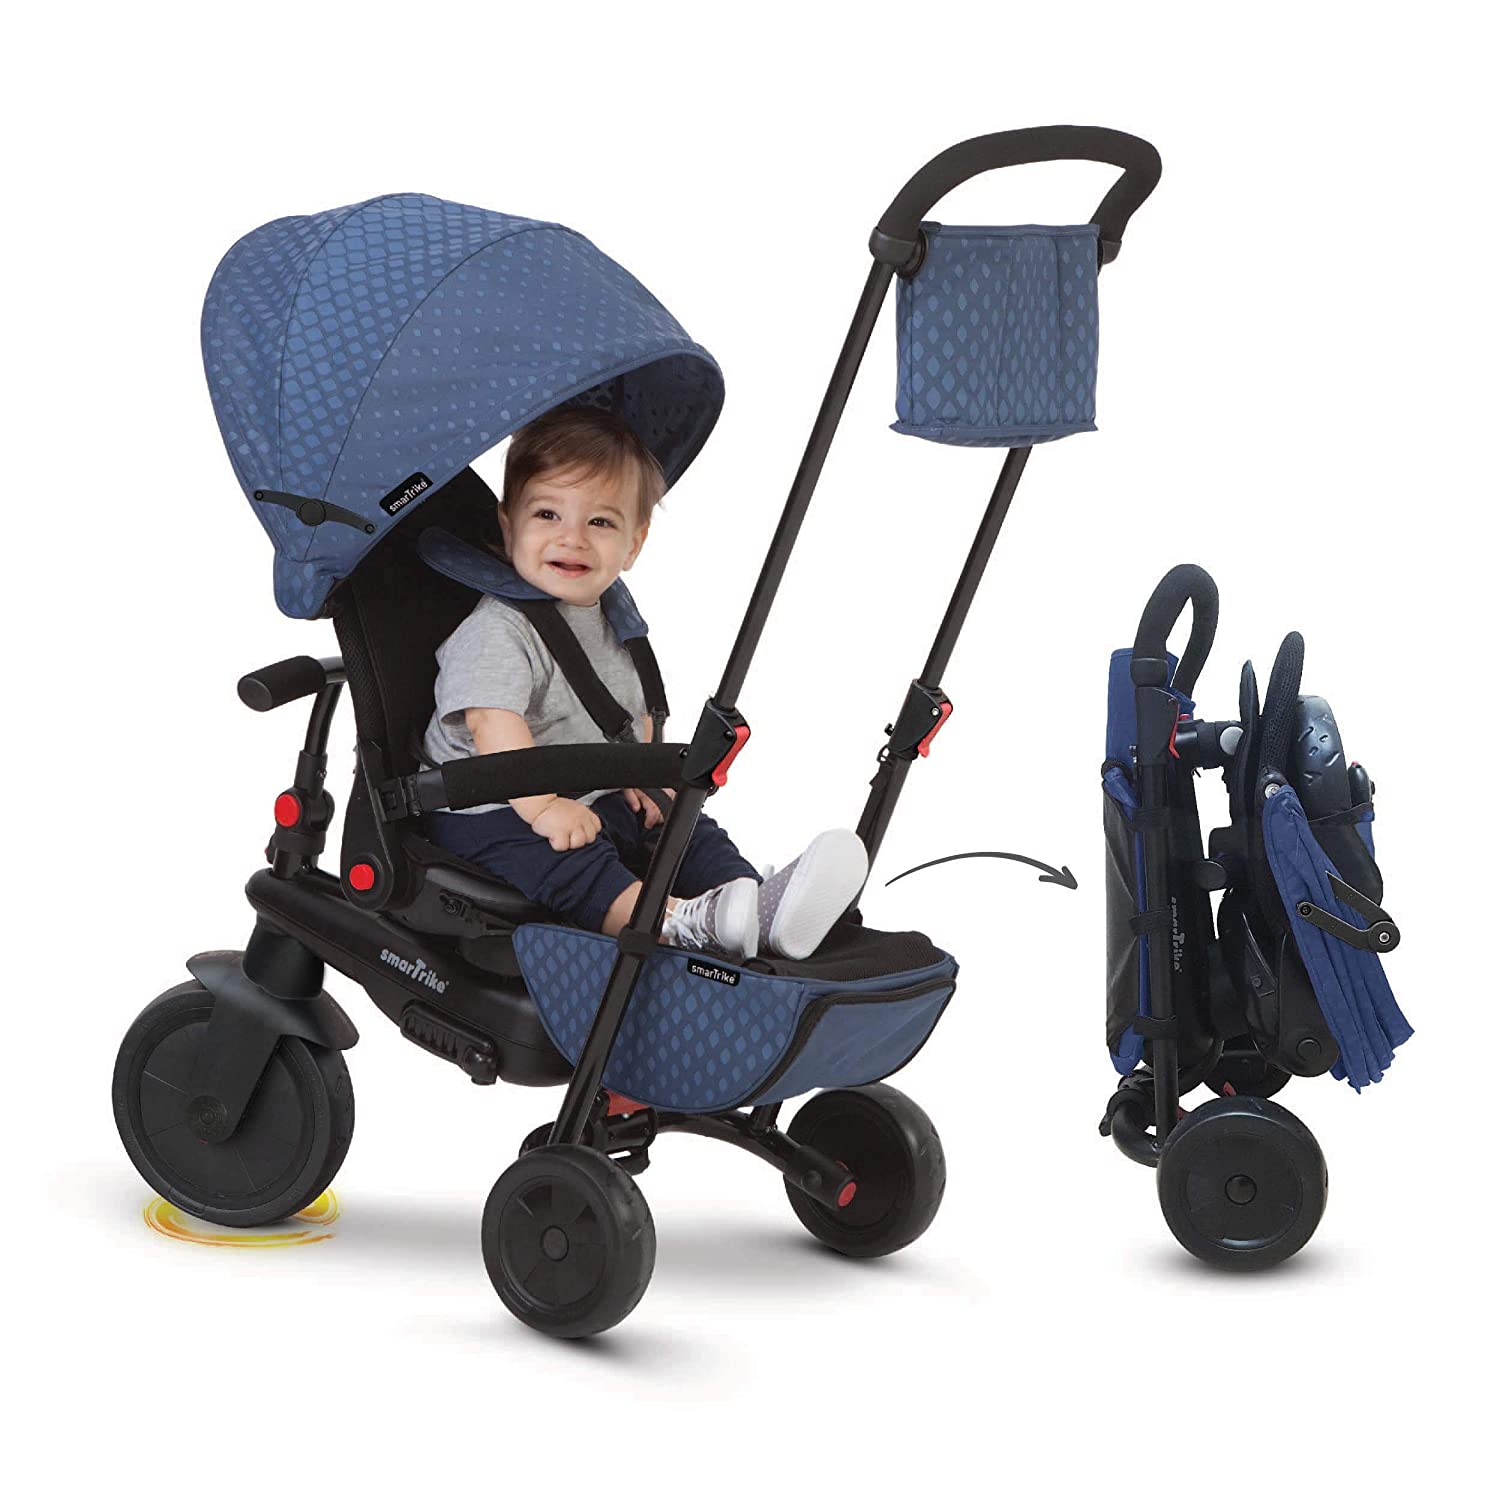 smarTrike smarTfold 700 Folding Baby Tricycle for 1 Year Old Black